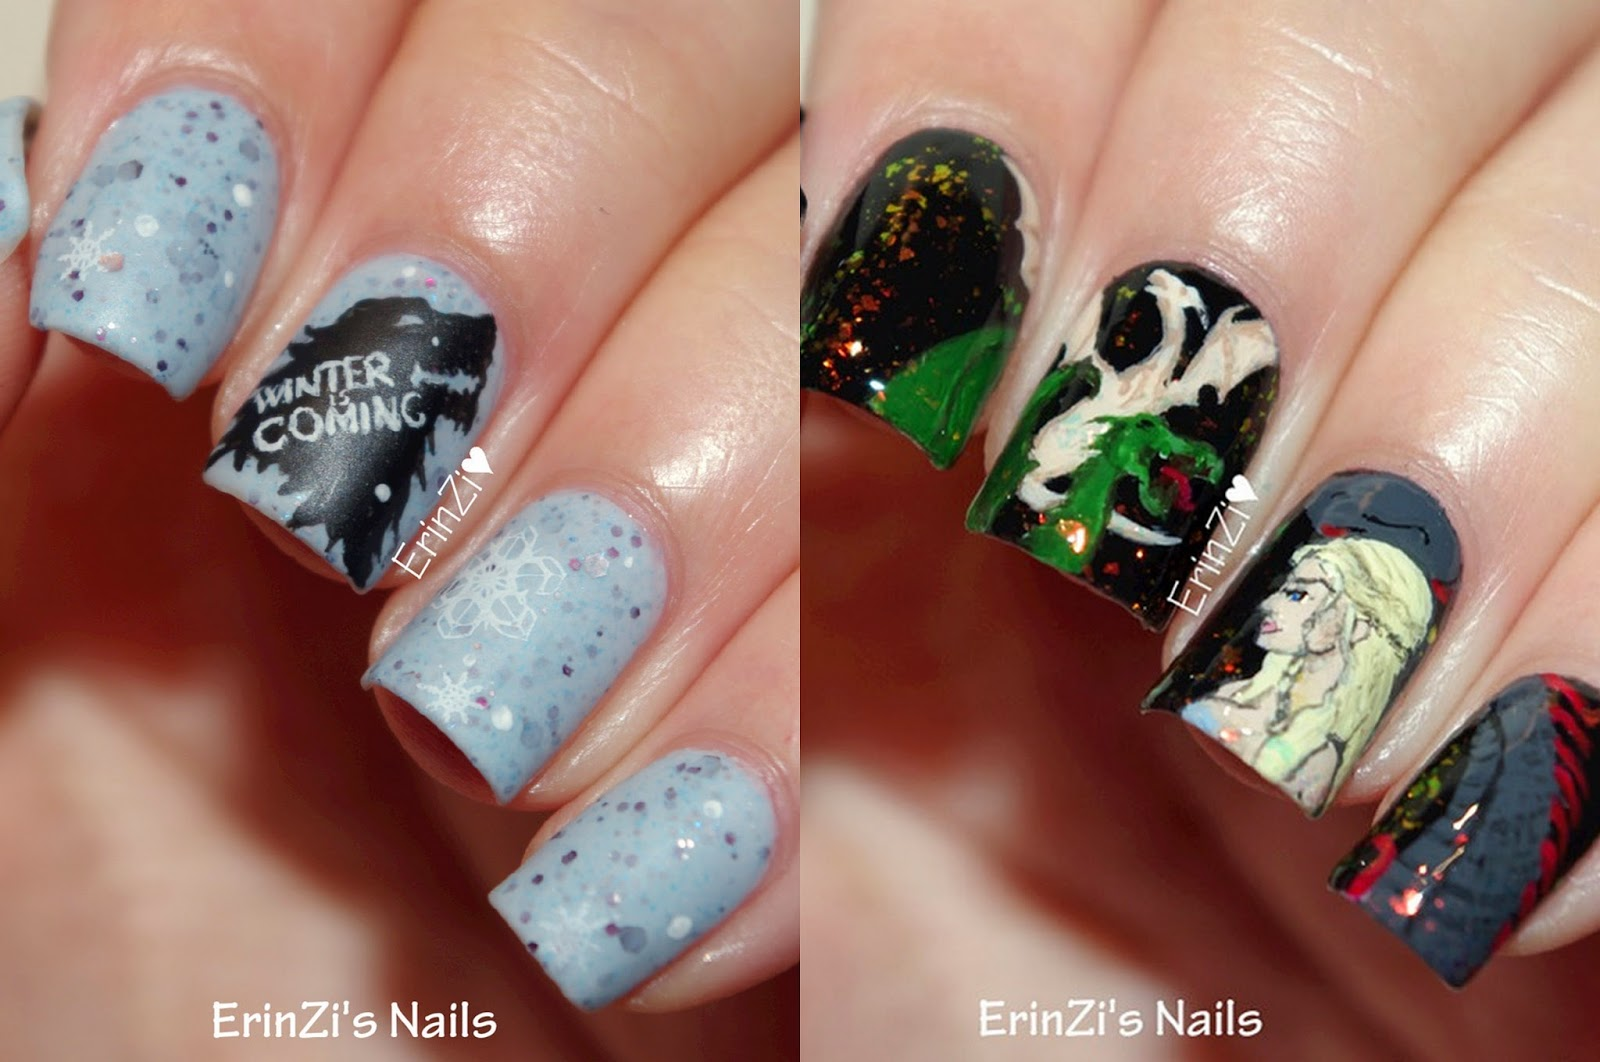 Nail Art Ideas » Nails Art Games - Pictures of Nail Art Design Ideas